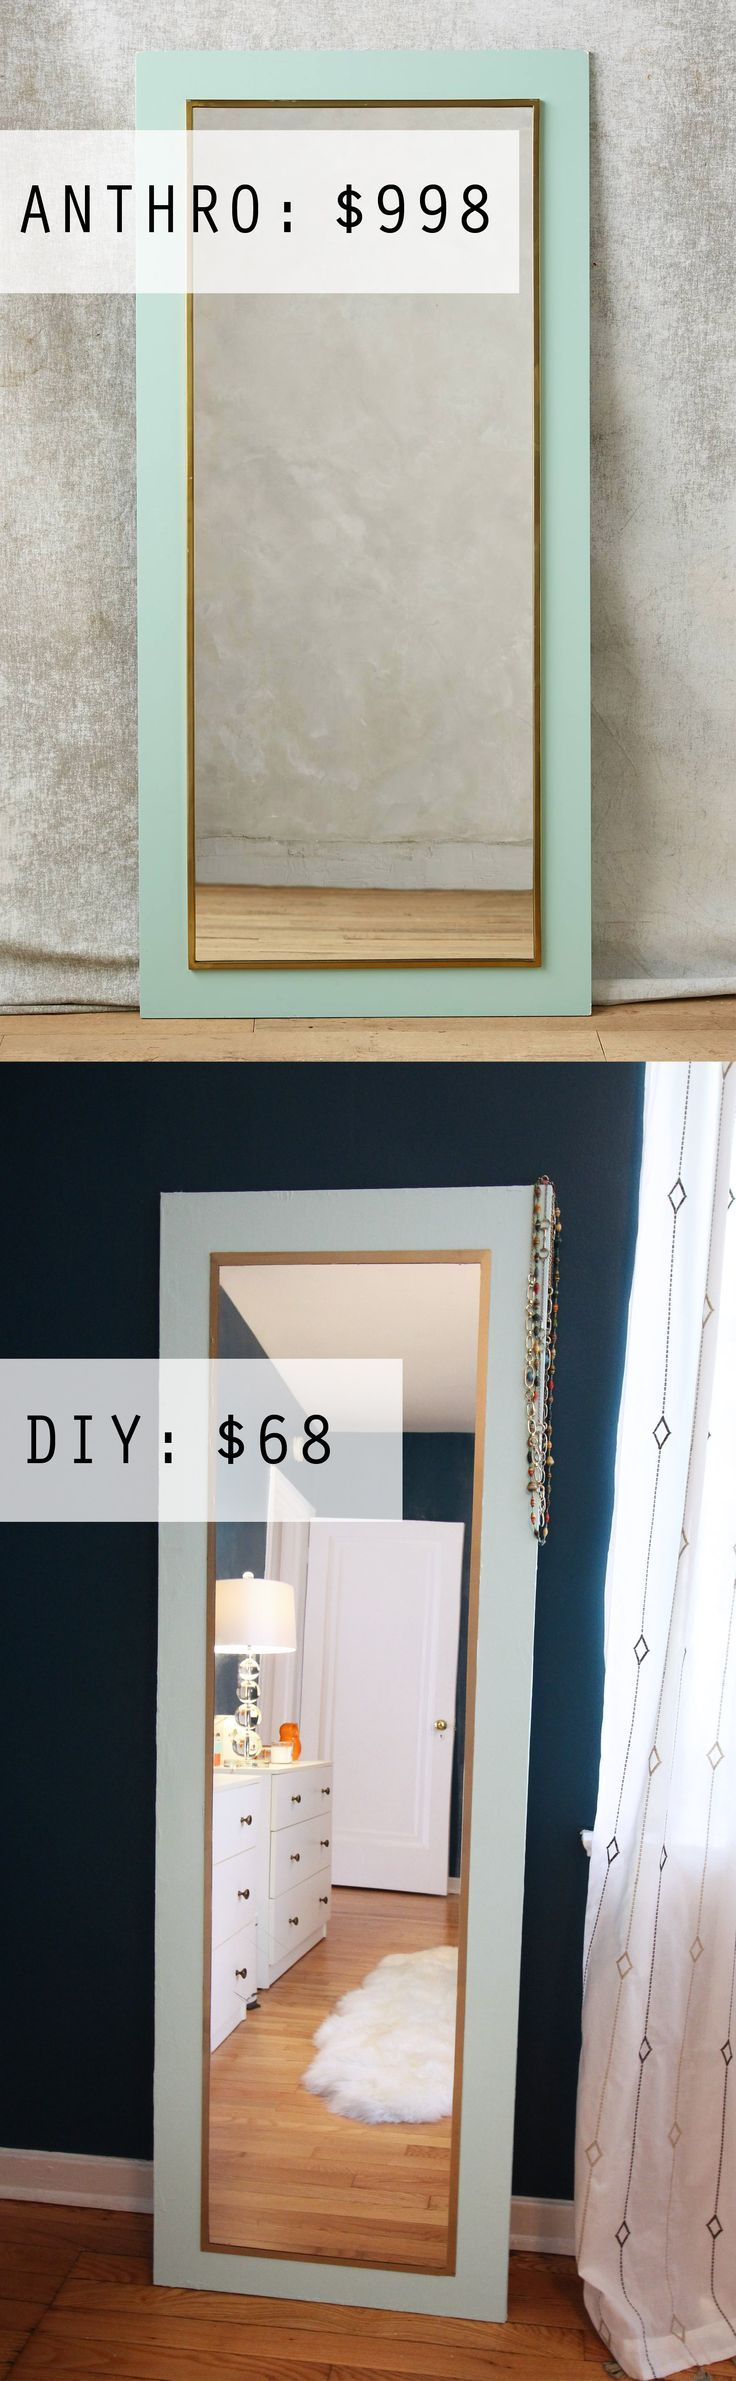 Diy mirror frame makeover